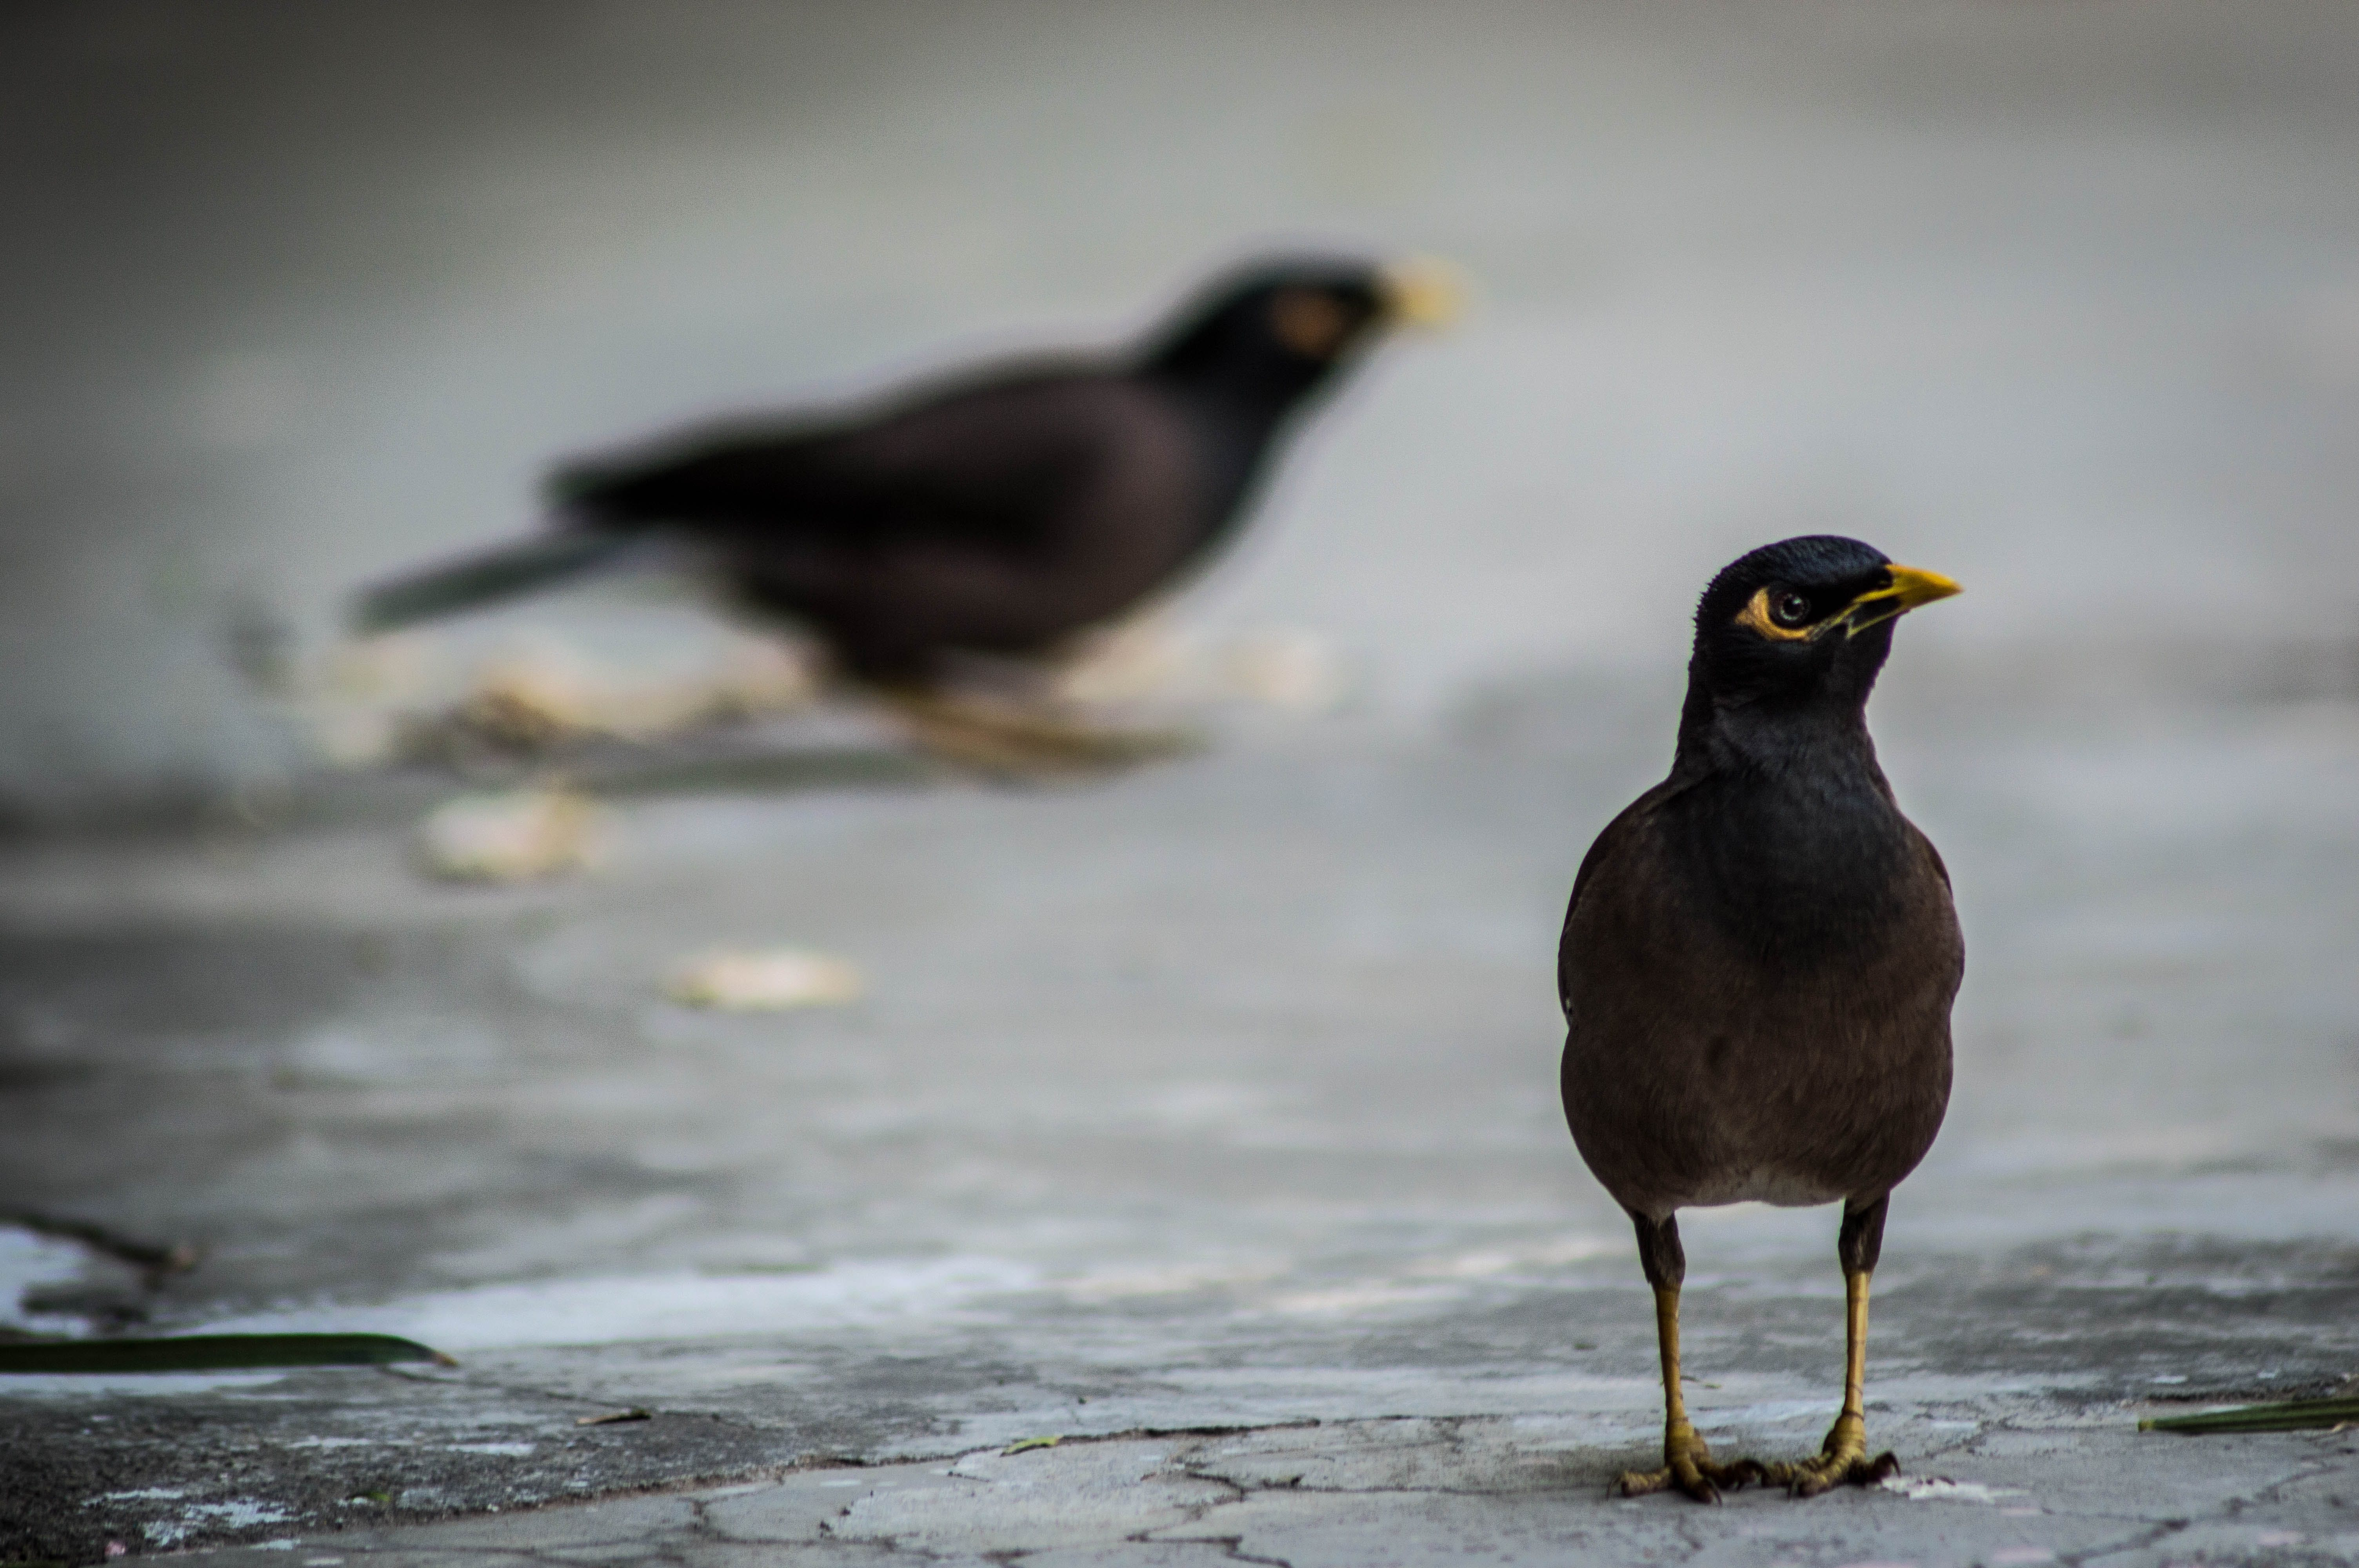 Selective Focus Photography of Black Bird on Gray Pavements